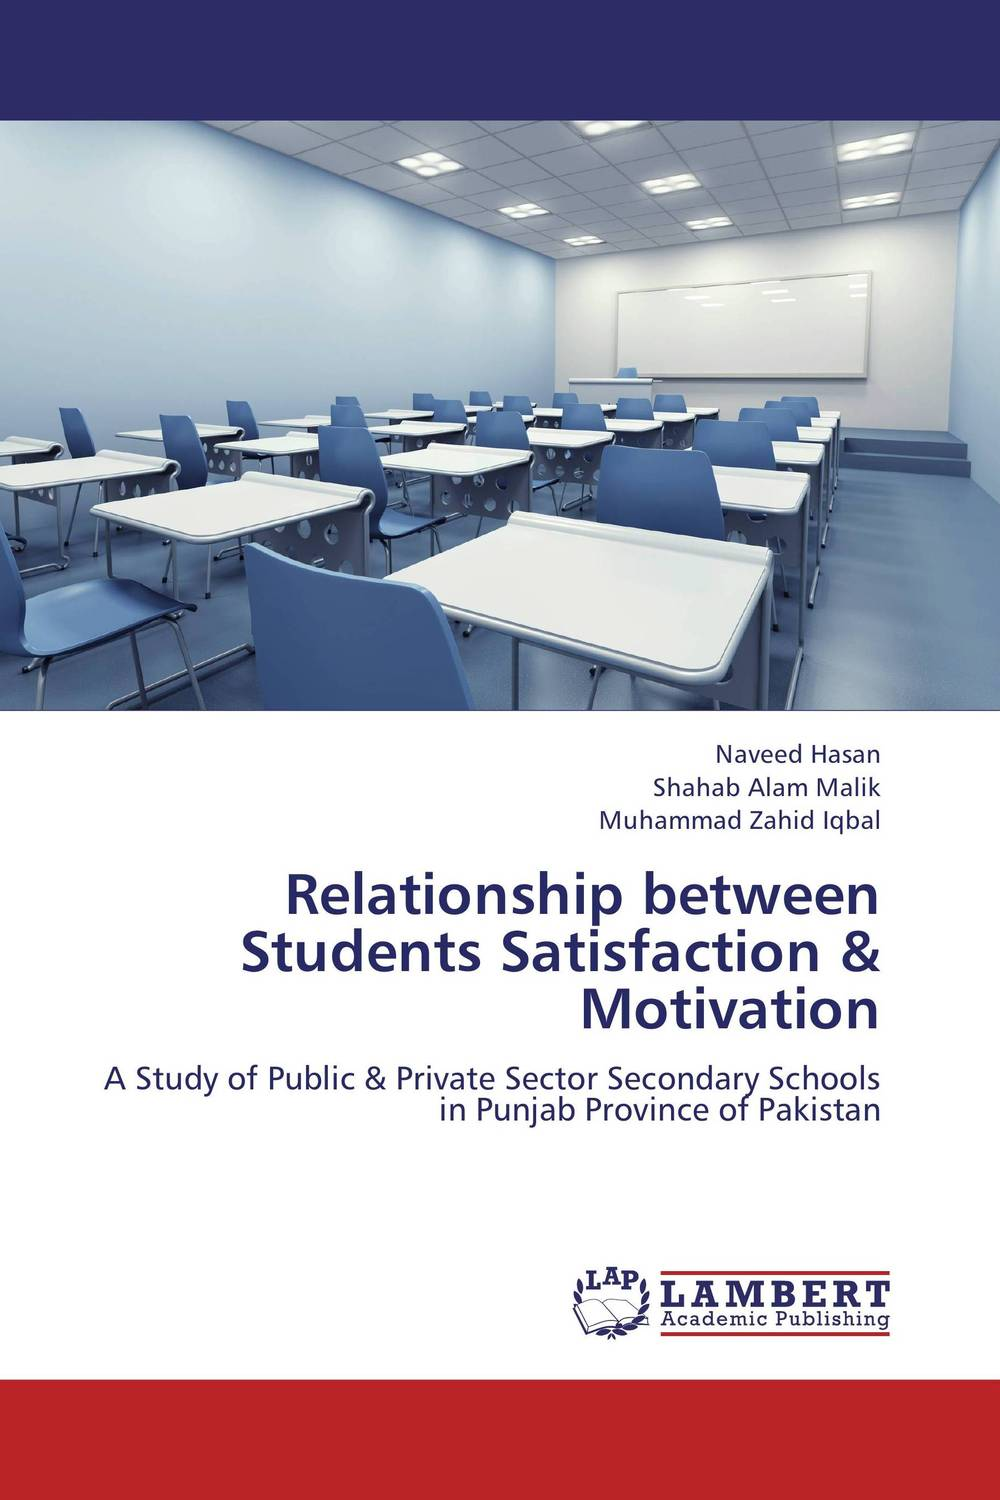 Relationship between Students Satisfaction & Motivation mick johnson motivation is at